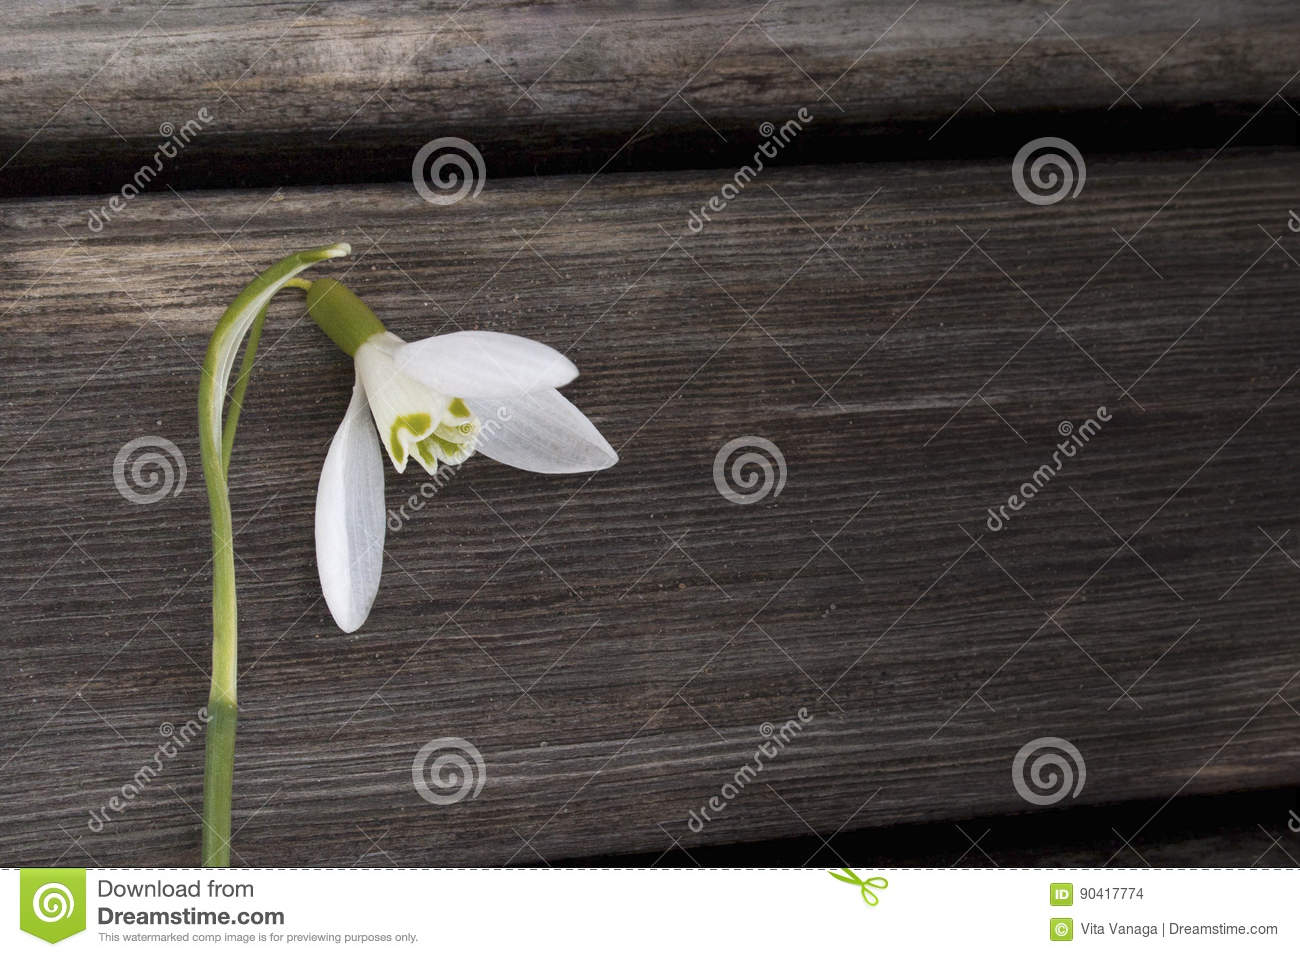 White snowbell closeup on wooden grey background, empty space, clear simplicity spring mood